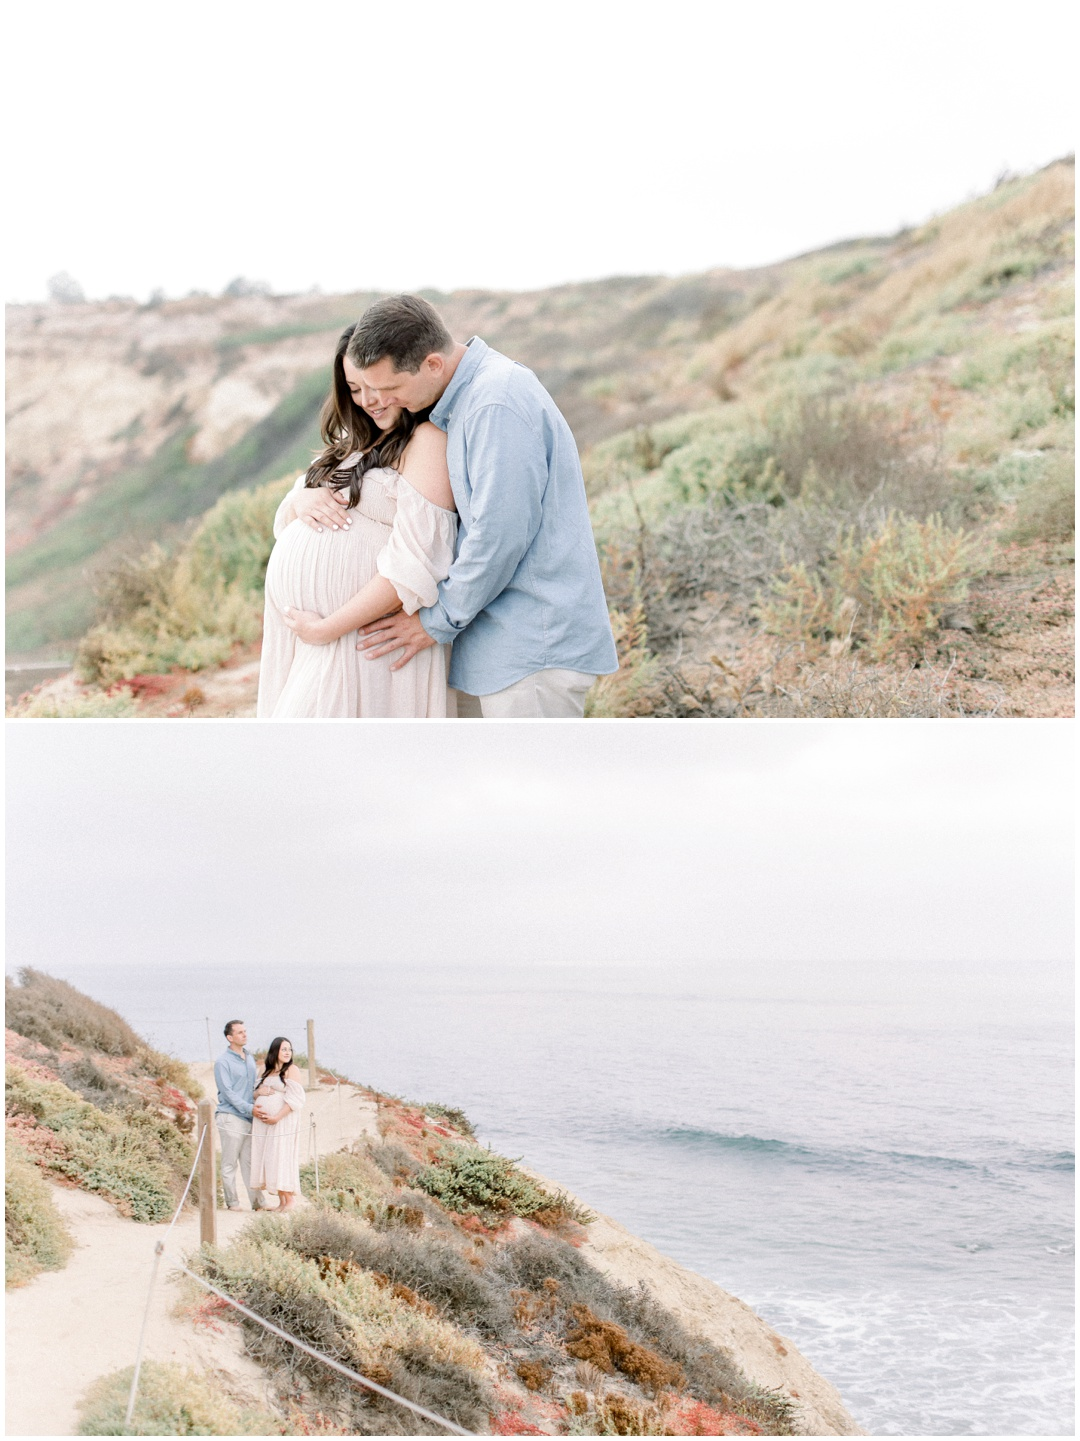 Newport_Beach_Newborn_Light_Airy_Natural_Photographer_Newport_Beach_Photographer_Orange_County_Maternity_Photographer_Cori_Kleckner_Photography_Newport_Beach_Photographer_Candice_Byle_Candice_Fillippini_Kevin_Fillippini__4149.jpg